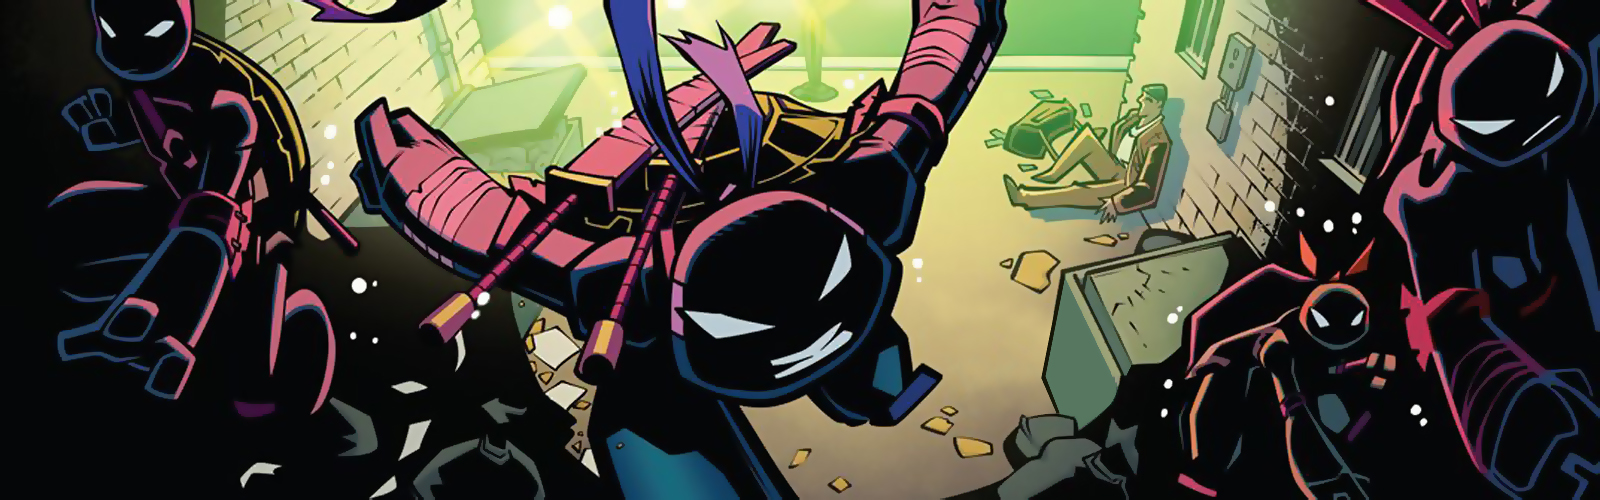 New Releases for 02/11/16 featuring Batman / TMNT Adventures #1